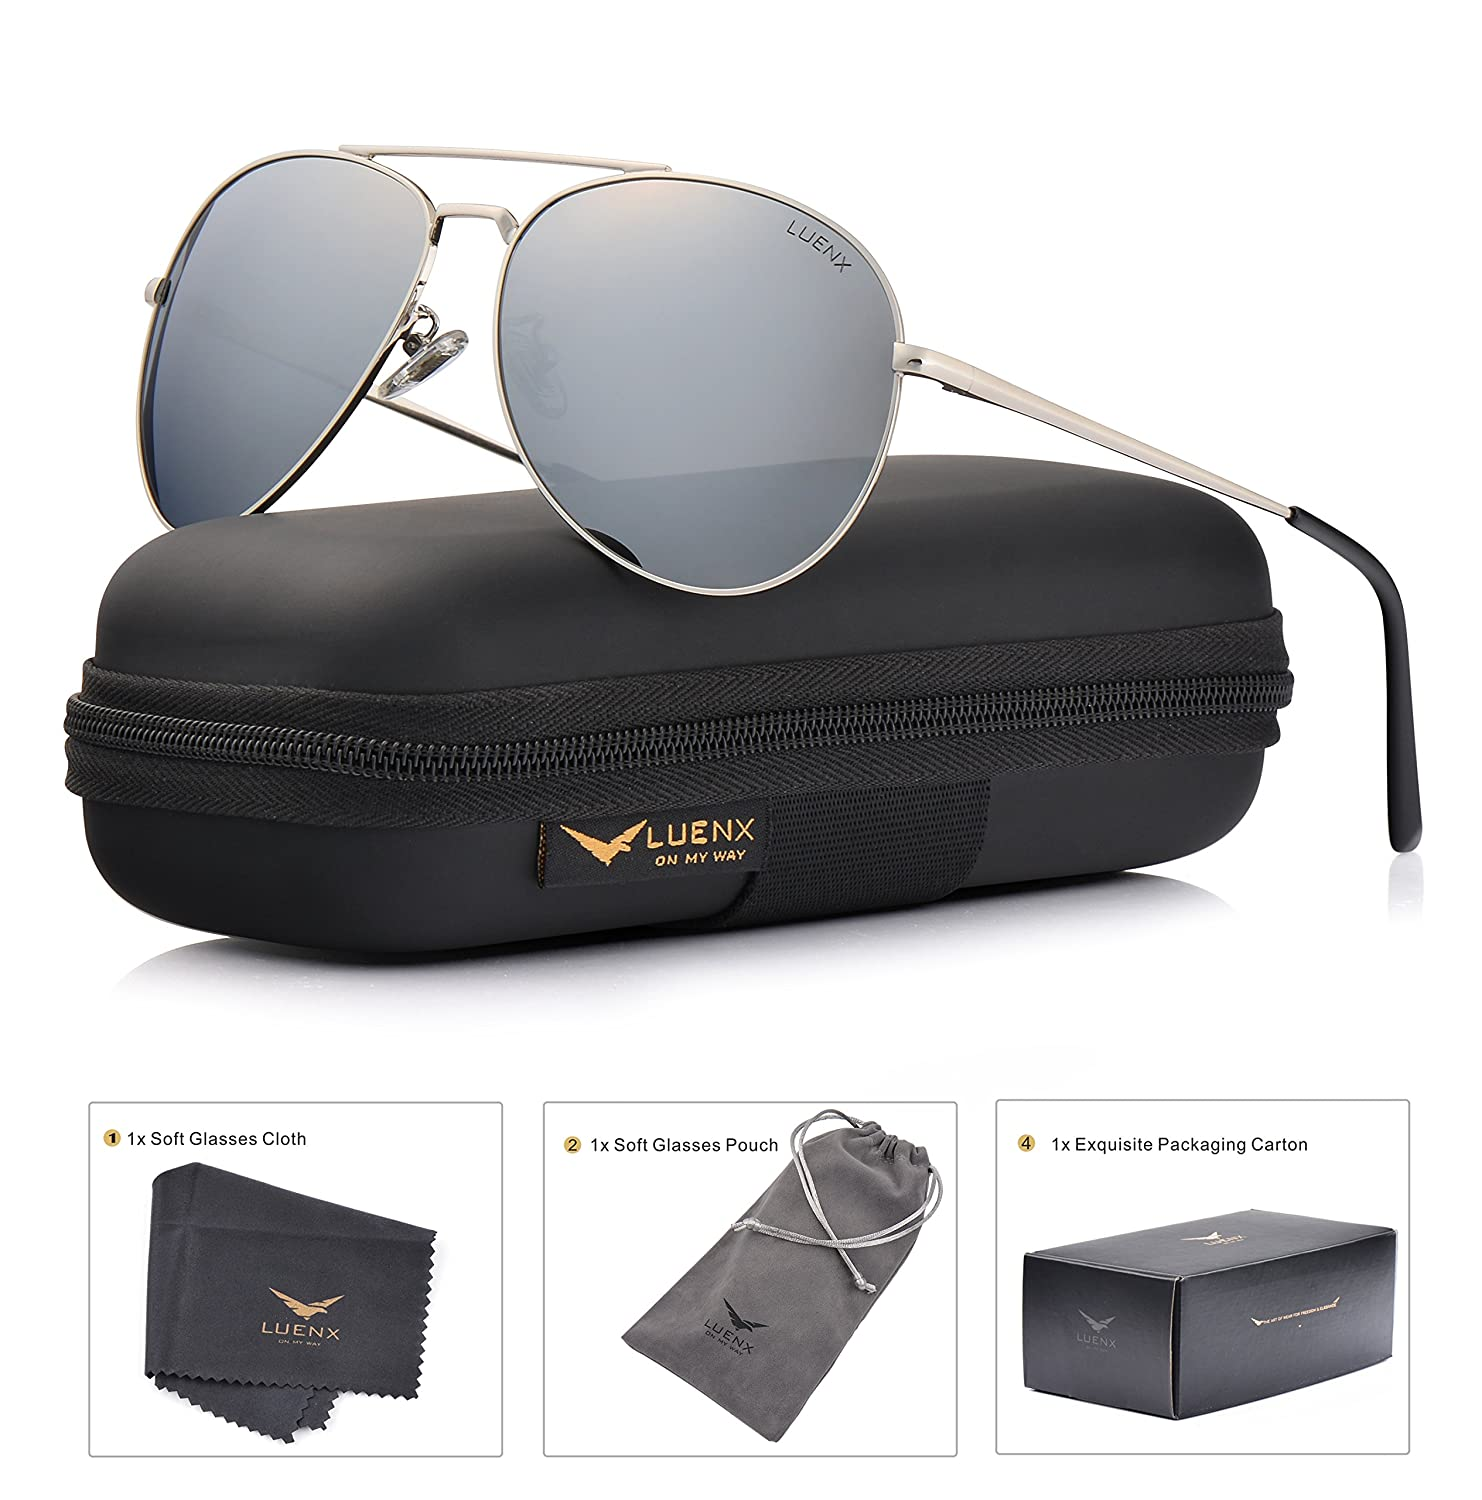 LUENX Aviator Sunglasses Polarized Mens Womens with Case - UV 400 Protection 60mm CA1704-17